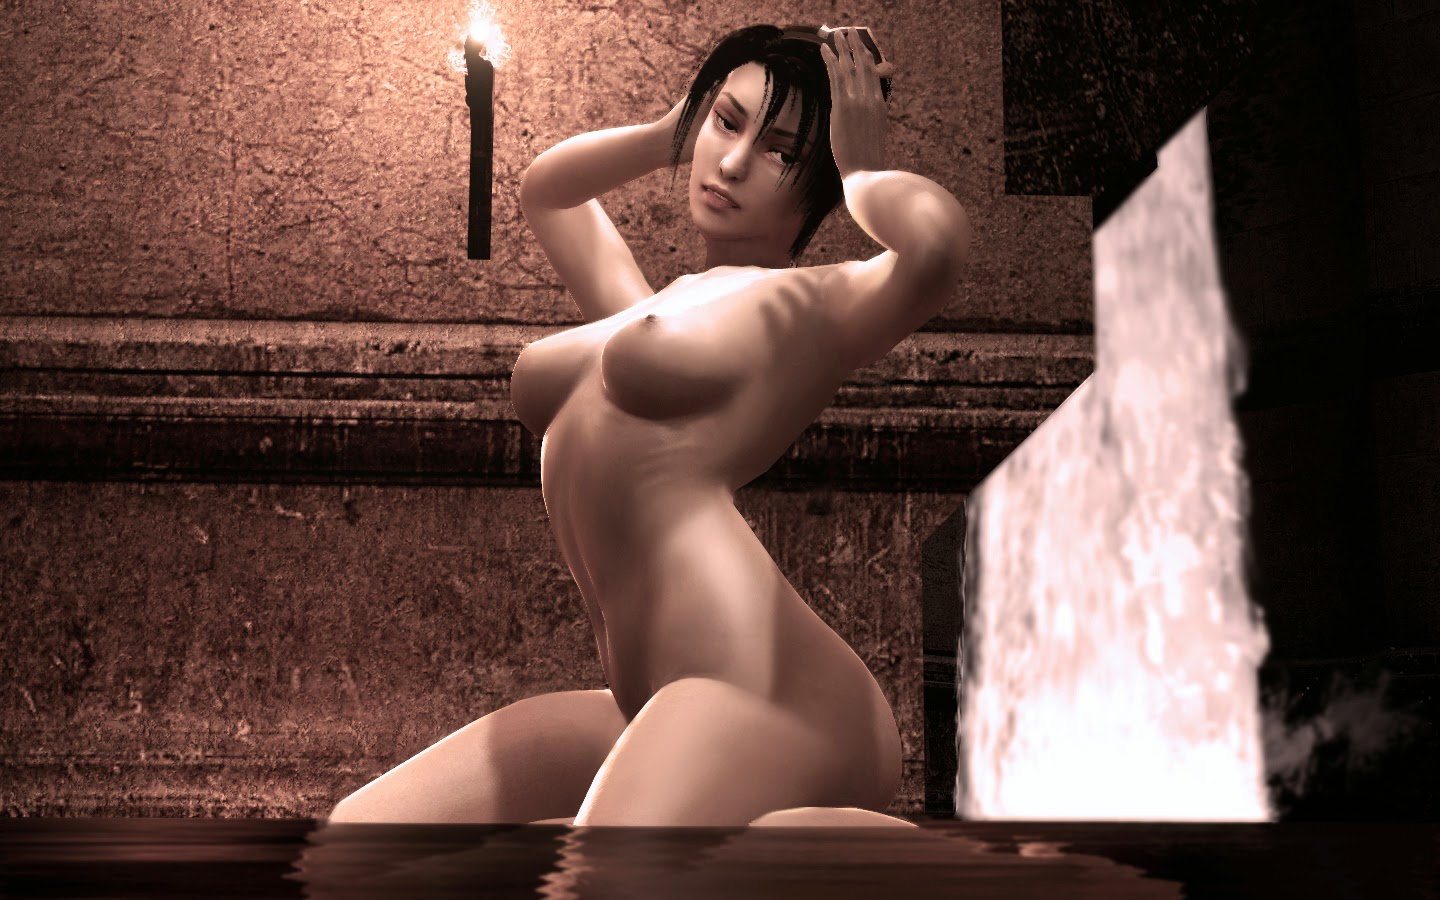 Soul calibur 4 nude hentai pictures